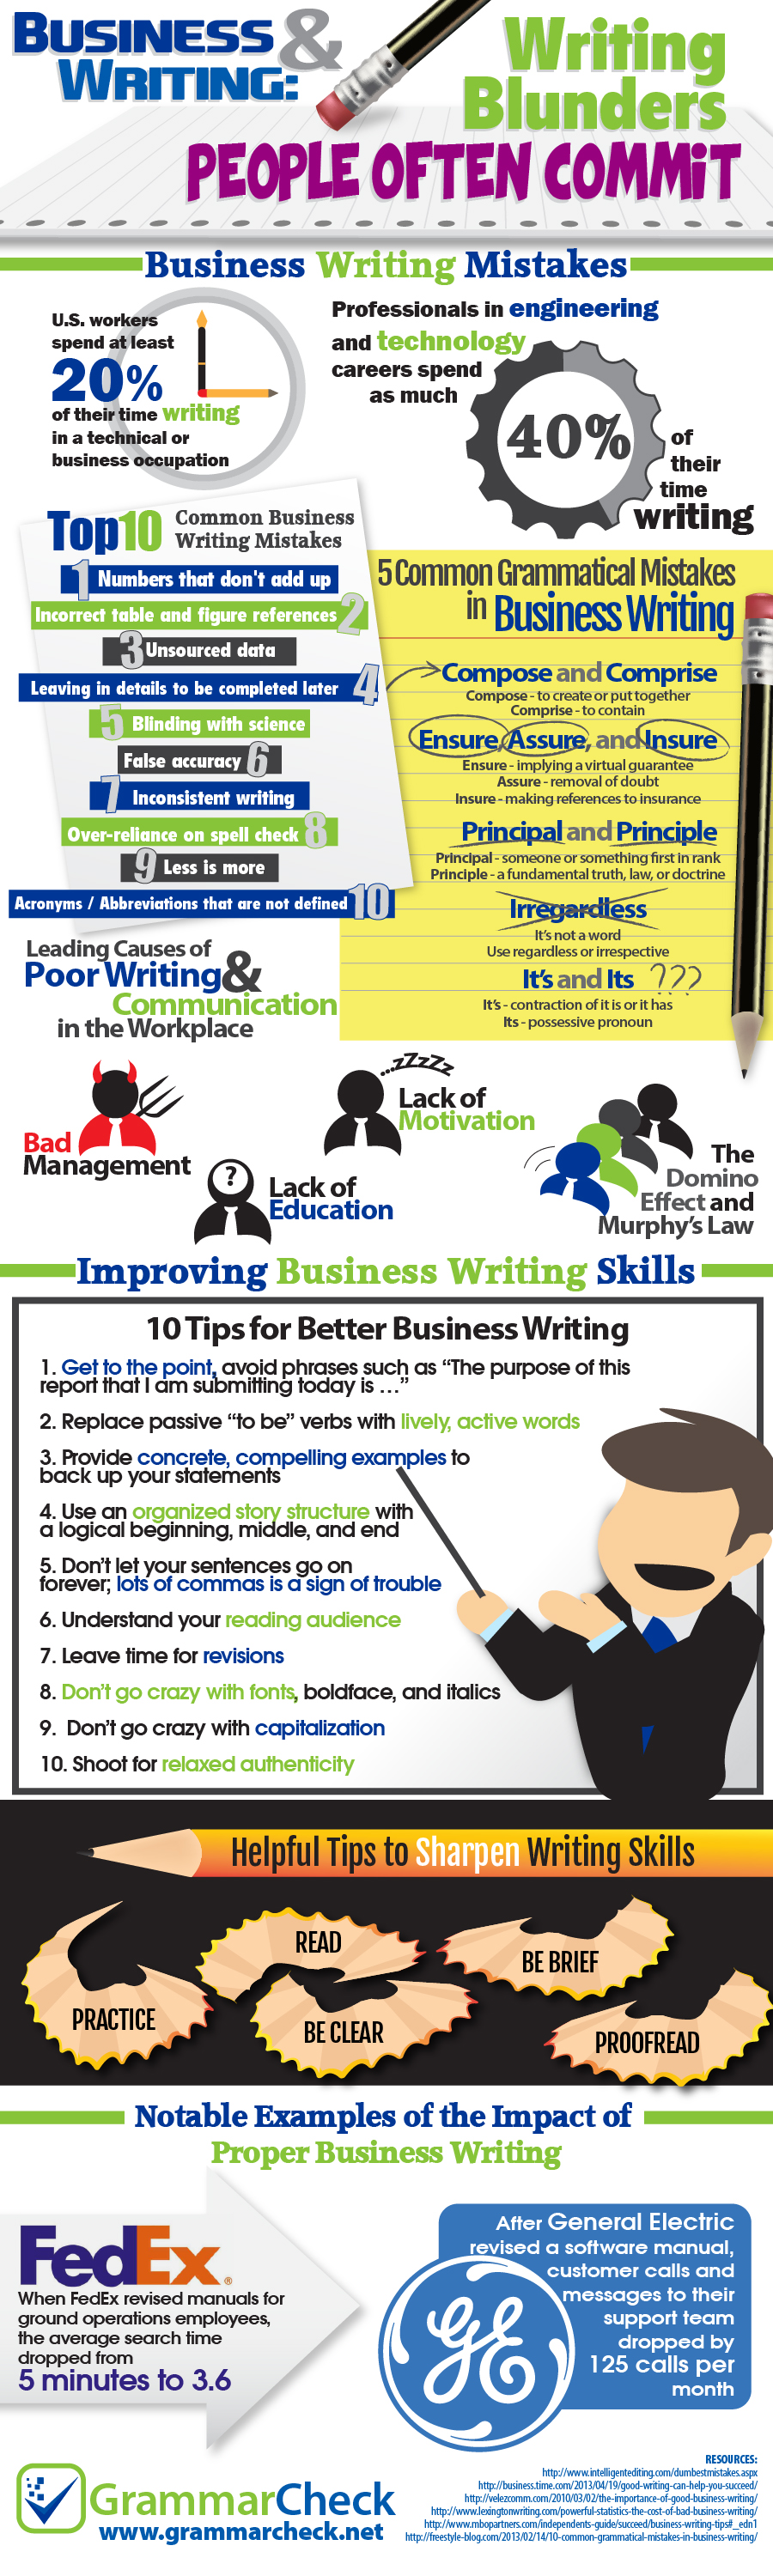 Top 10 Common Business Writing Blunders & 5 Everyday Grammatical Mistakes (Infographic)